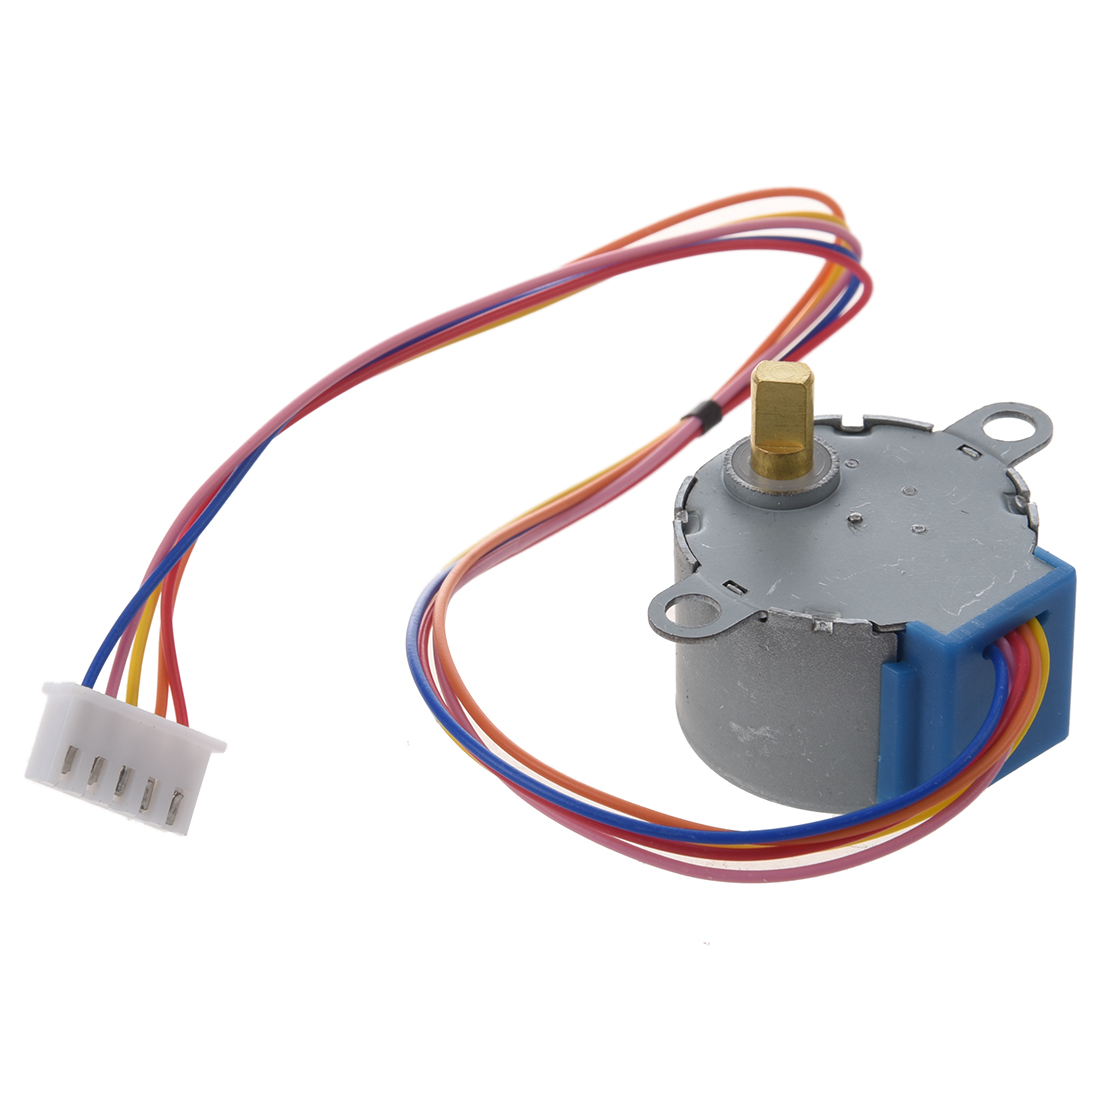 28BYJ-48-5V 4 Phase 5 Wire DC 5V Gear Step Stepper Motor